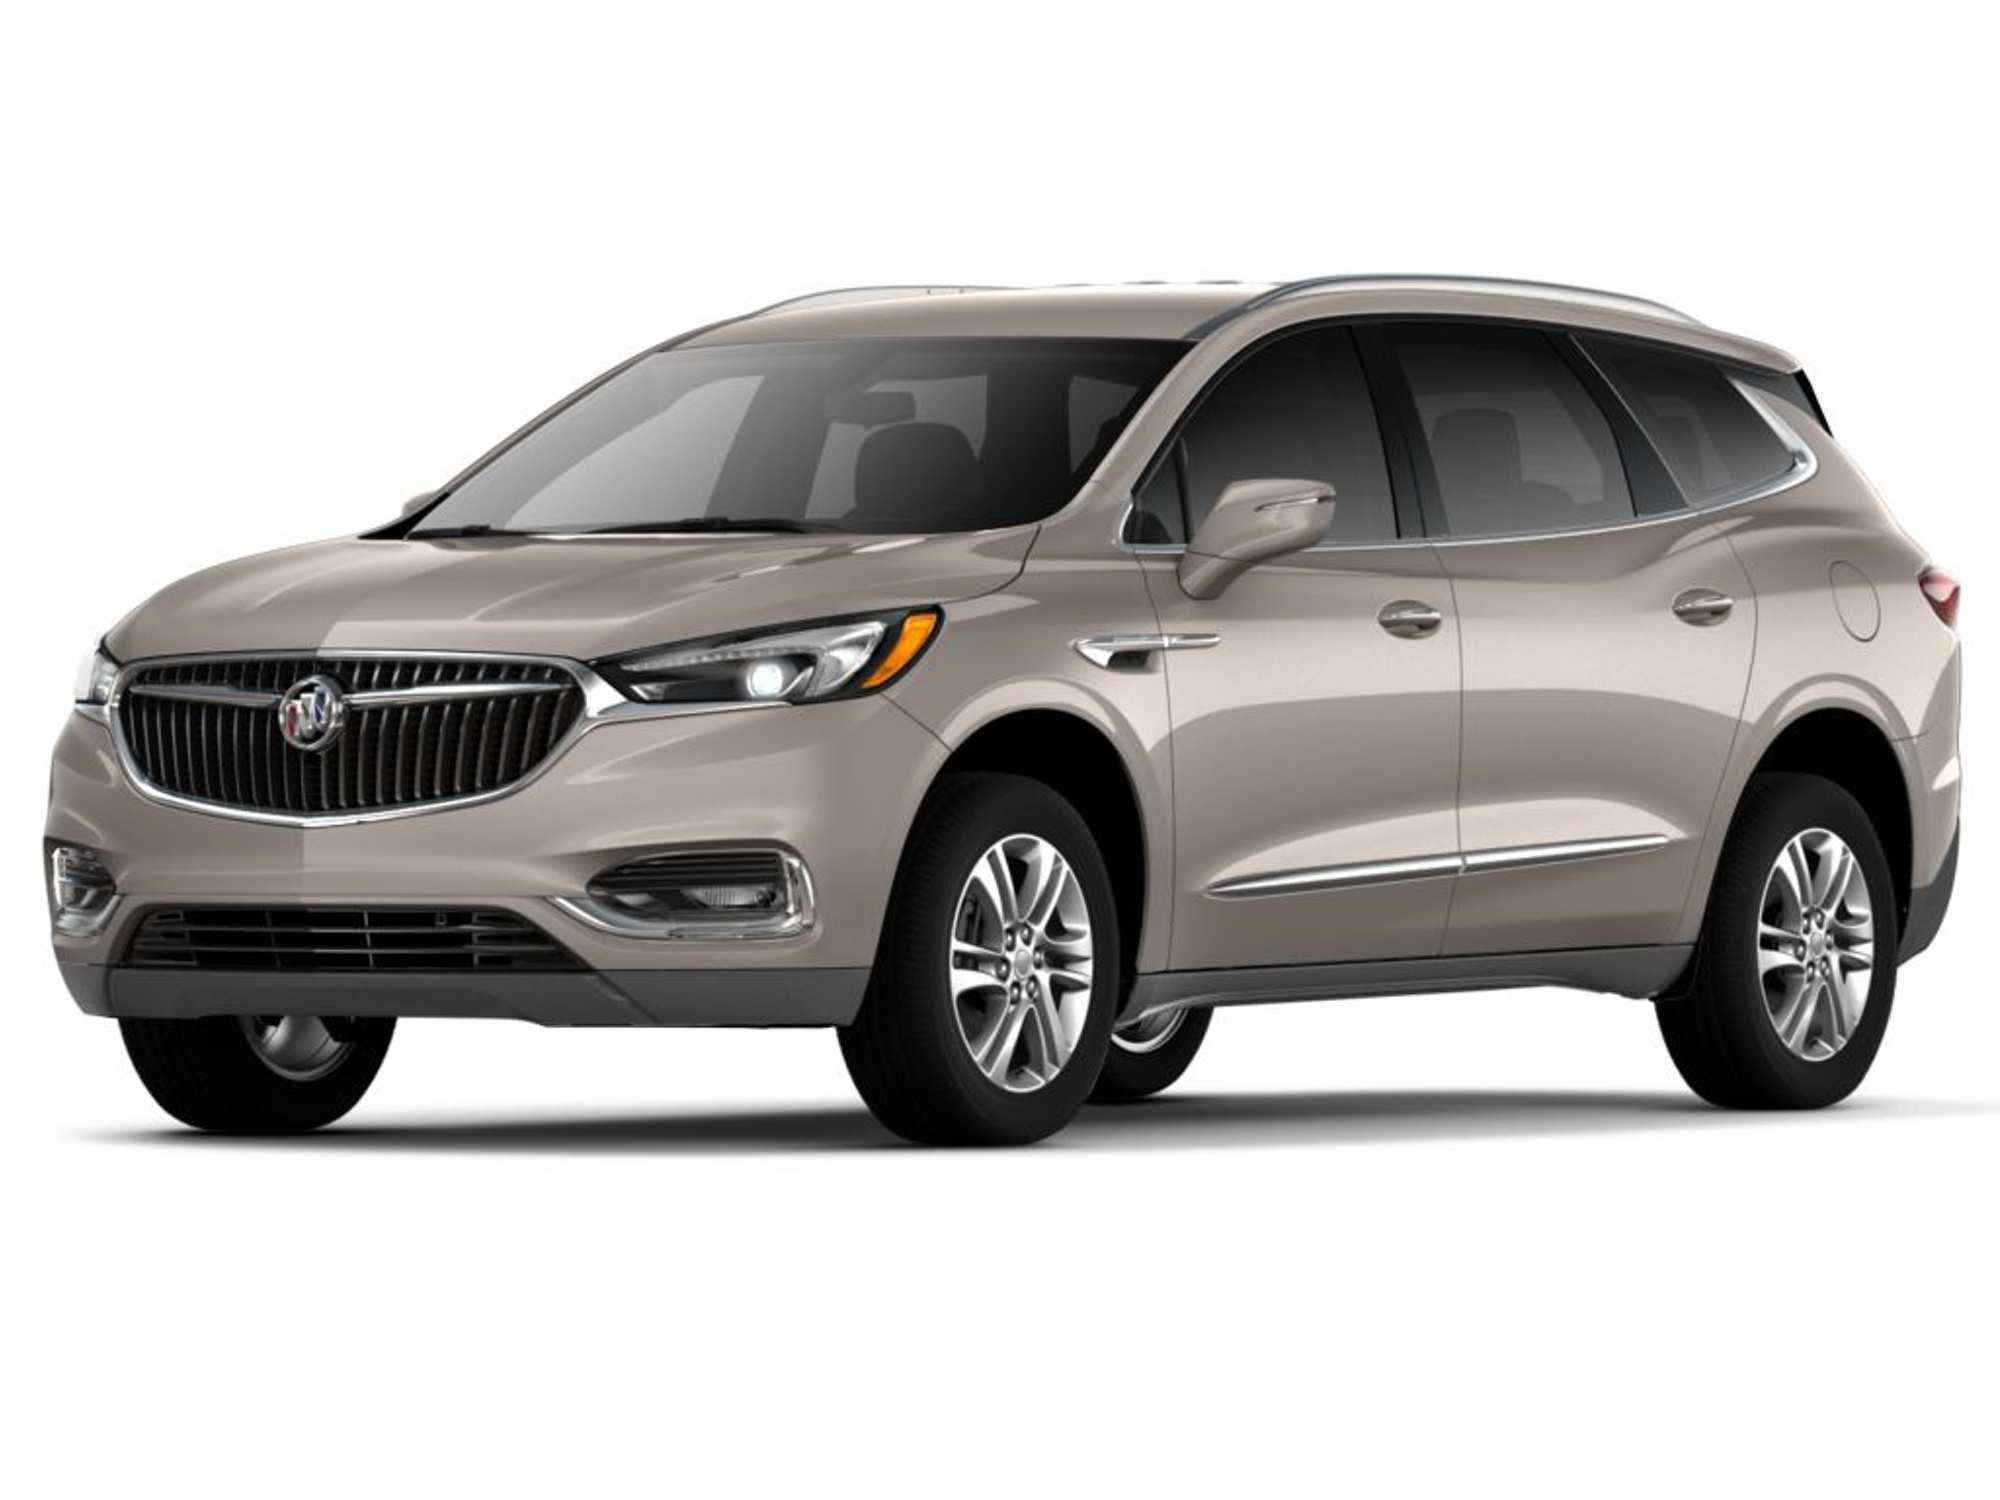 91 Great 2020 Buick Enclave Avenir Colors Prices with 2020 Buick Enclave Avenir Colors